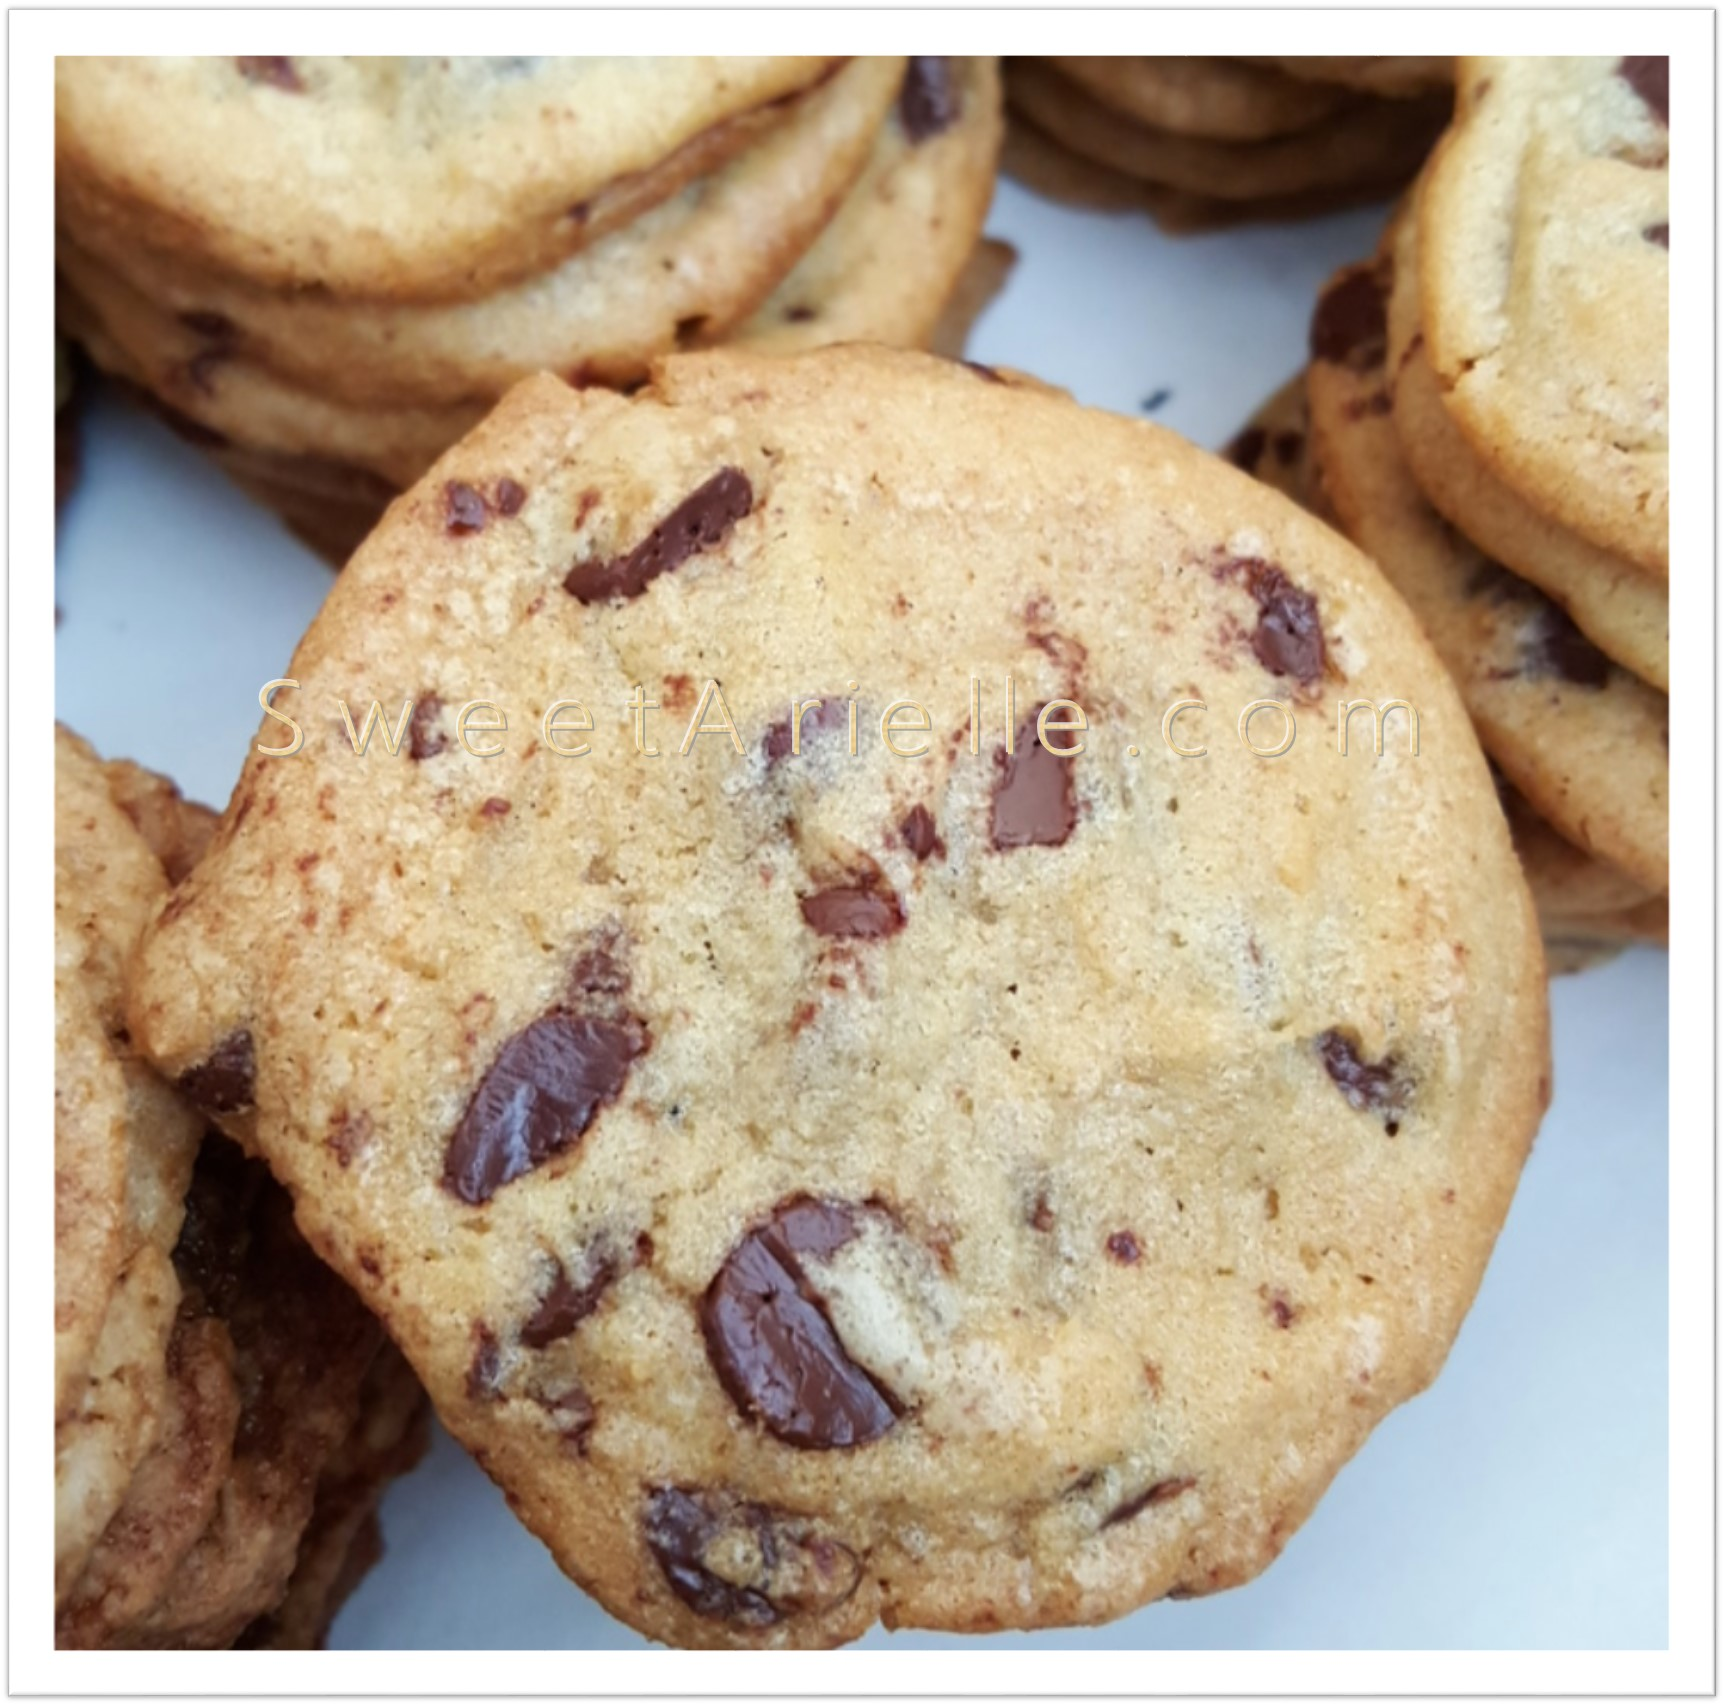 Choc Chip Cookie 2.jpg